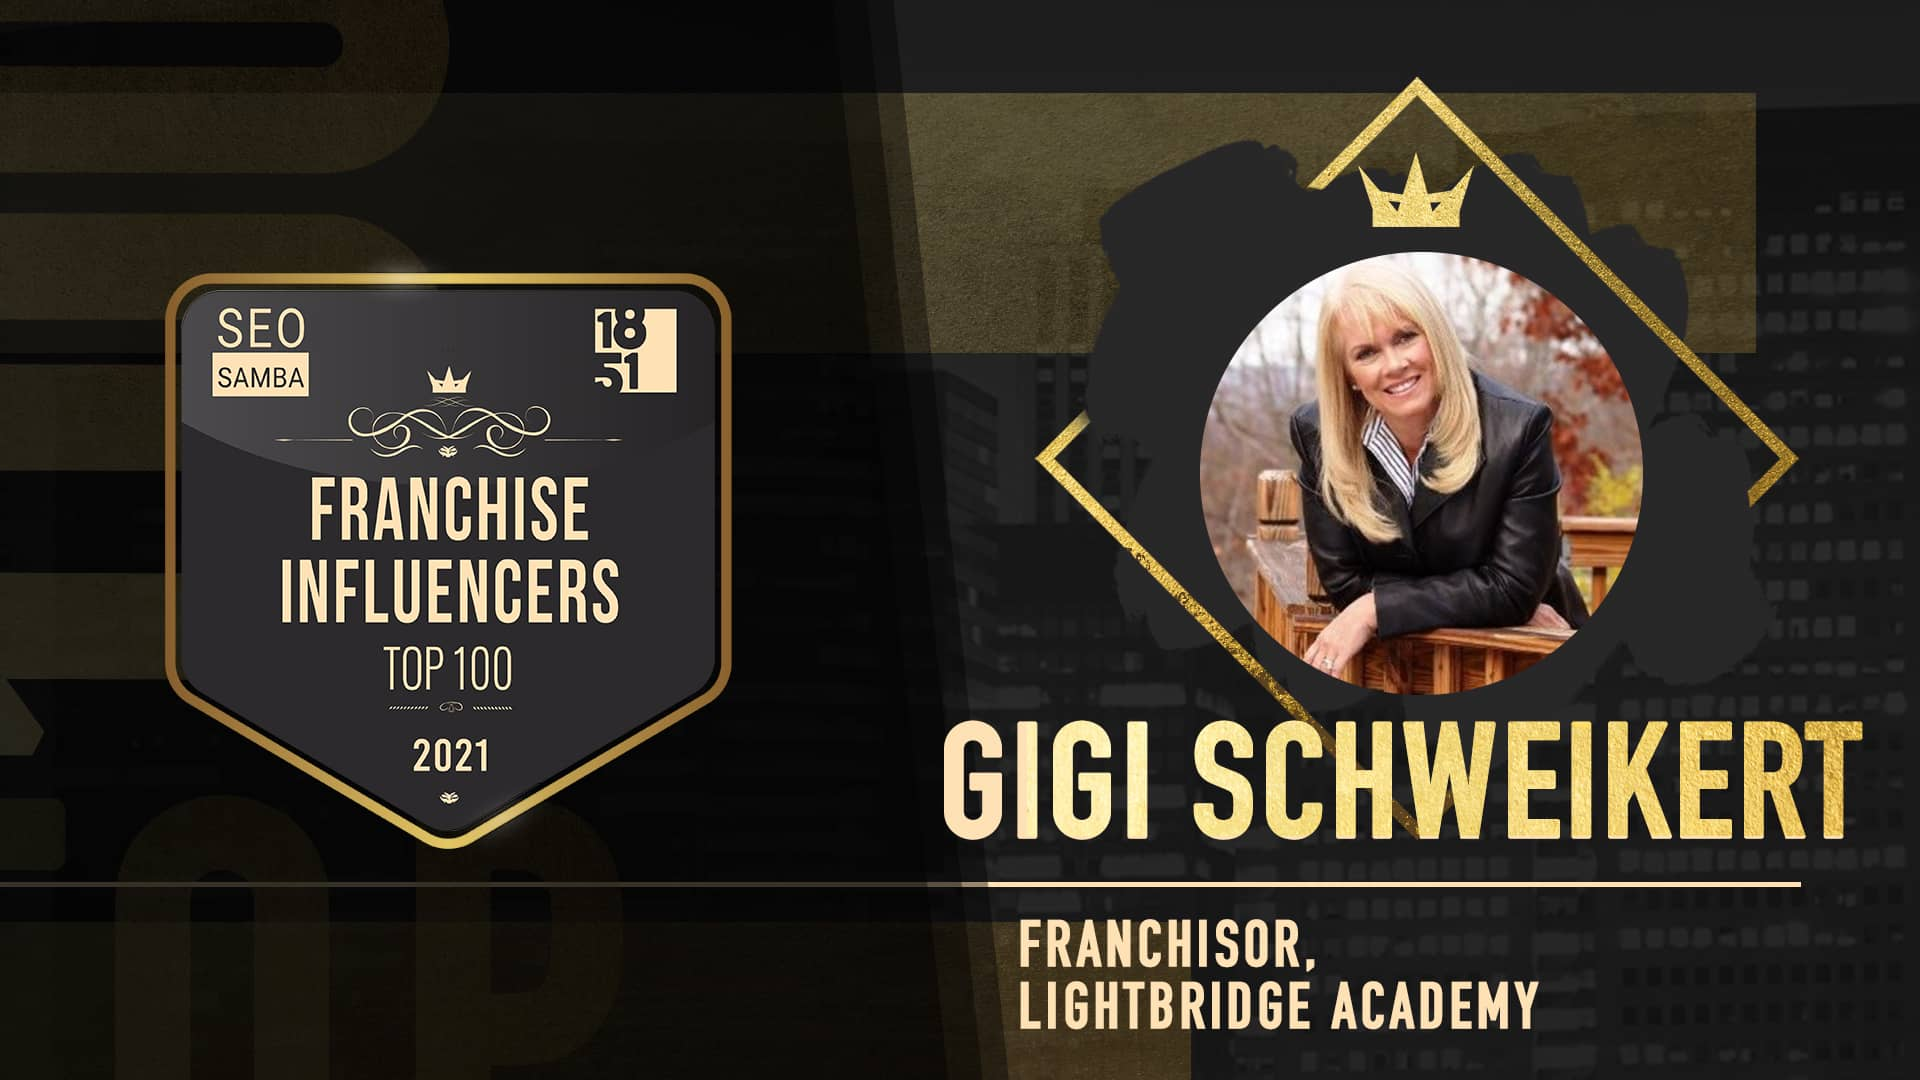 gigi-schweikert-lightbridge-academy